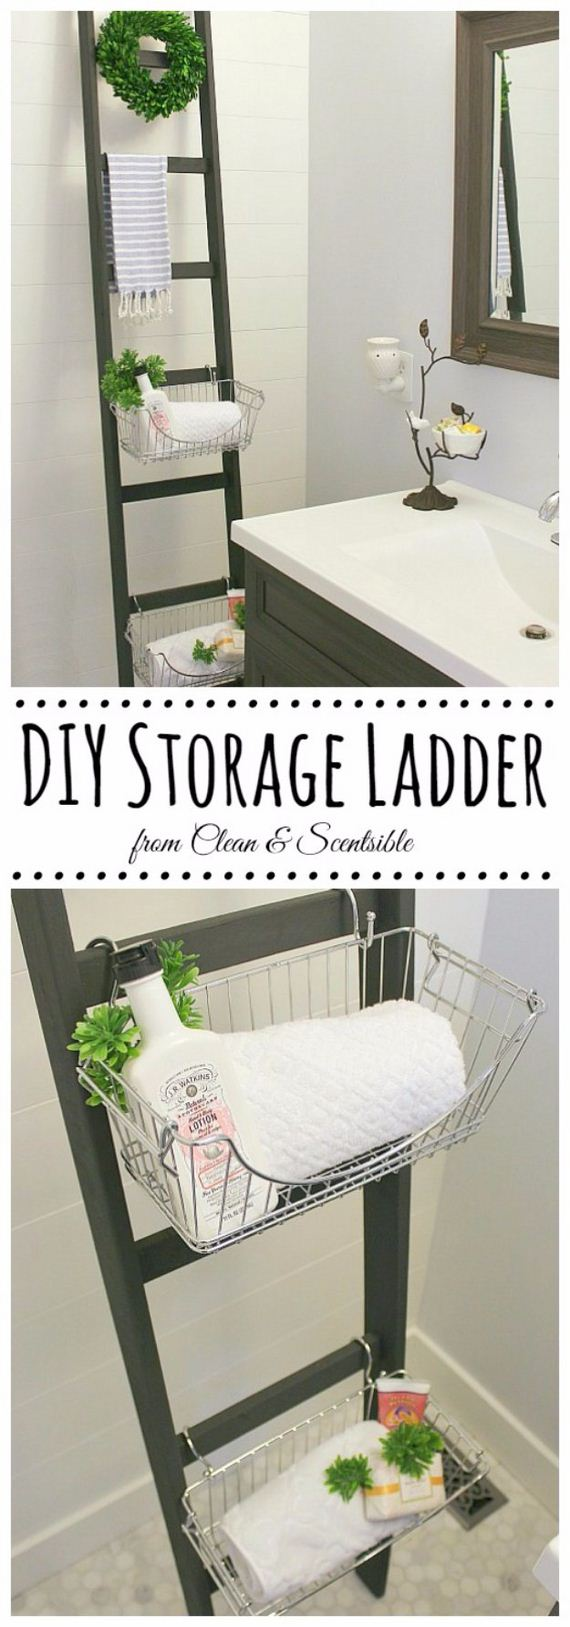 08-Toilet-Paper-Holder-With-Shelf